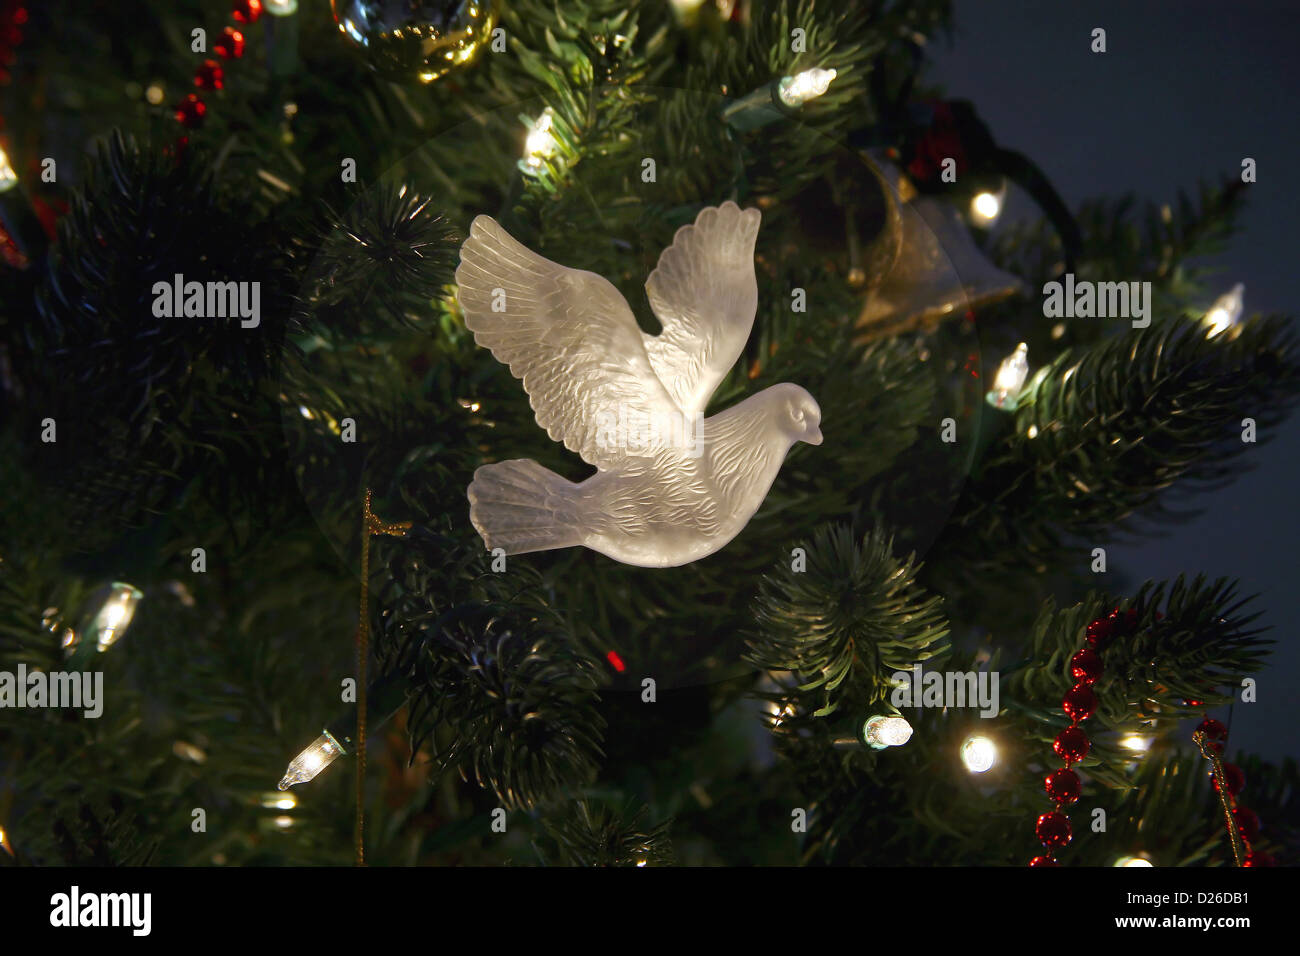 White dove Christmas ornament Stock Photo: 53002629 - Alamy